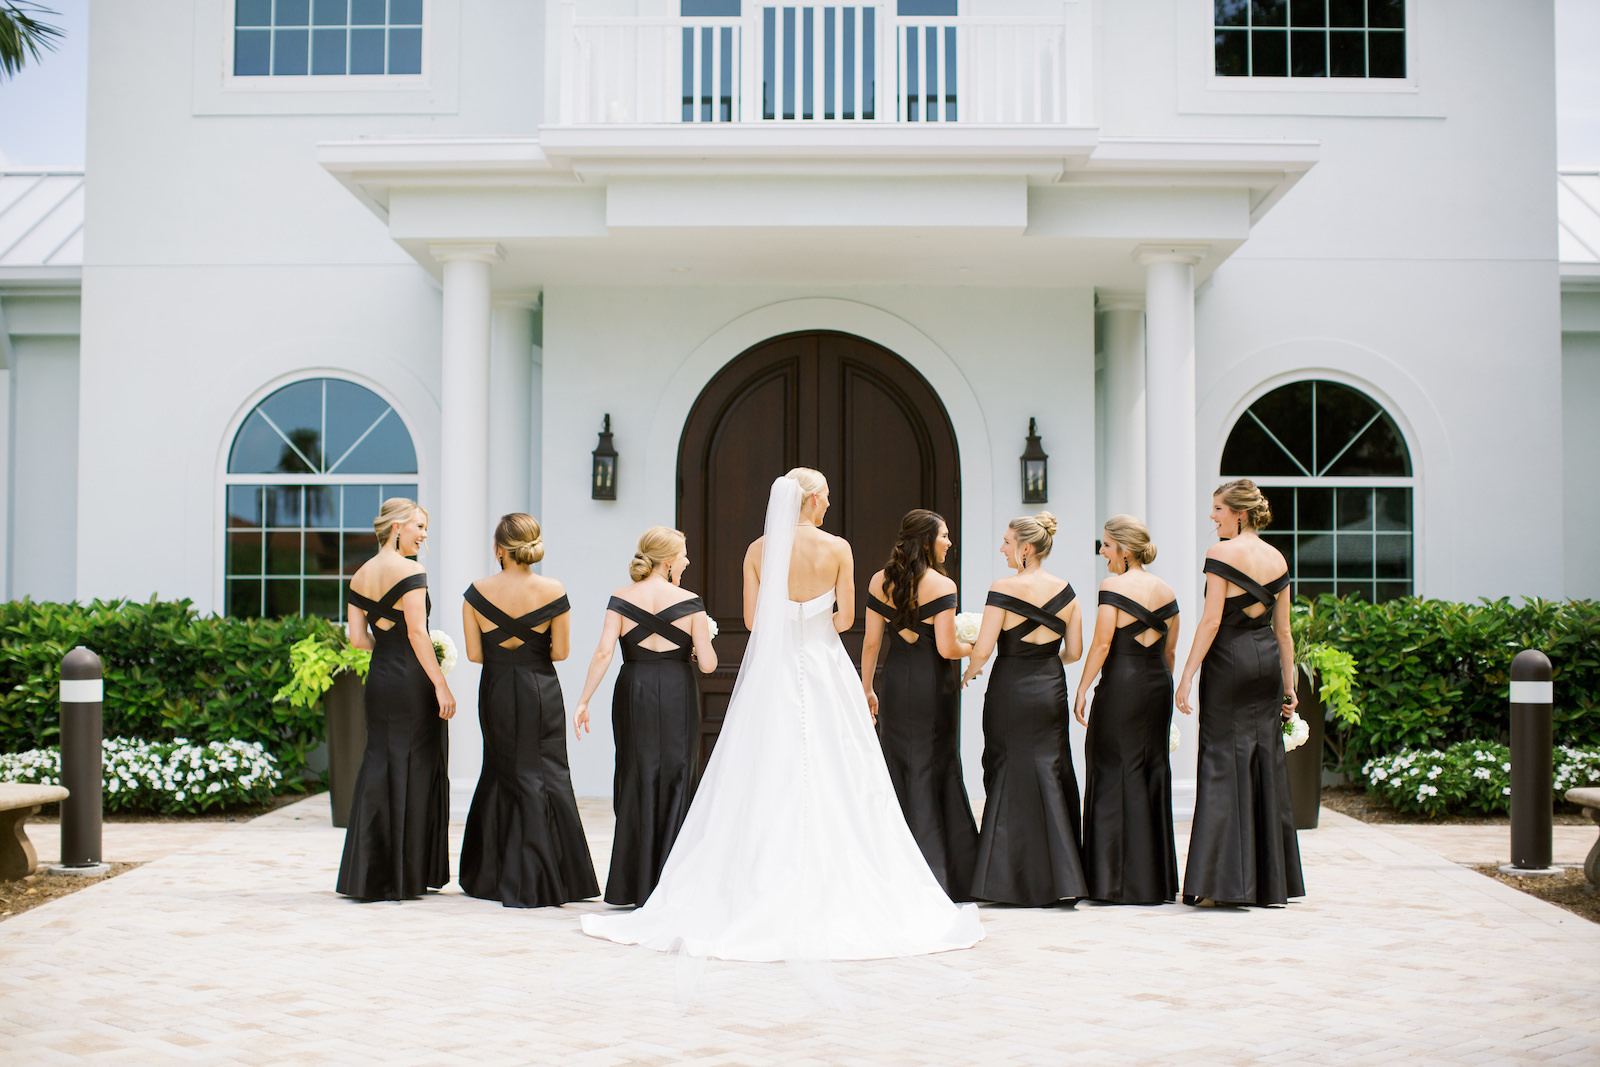 Classic Tampa Bride with Bridesmaids in Matching Crossback Black Dresses | Safety Harbor Traditional Wedding Venue Harborside Chapel